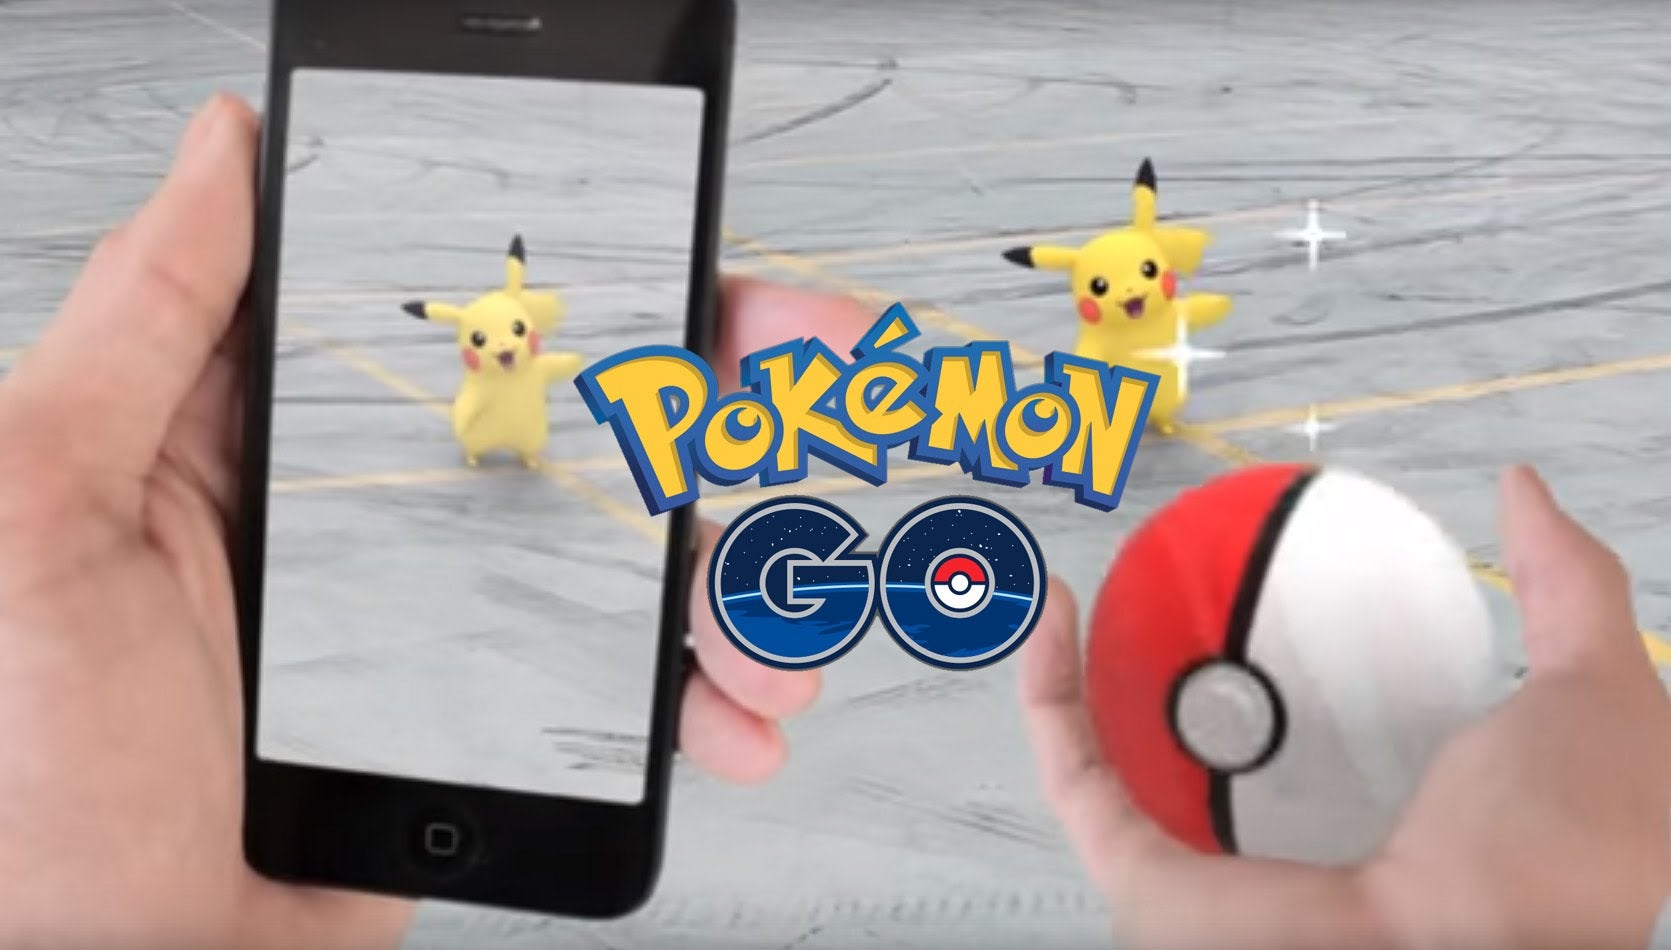 Pokemon GO: More Rare Pokemon Spawns After Using Incense?